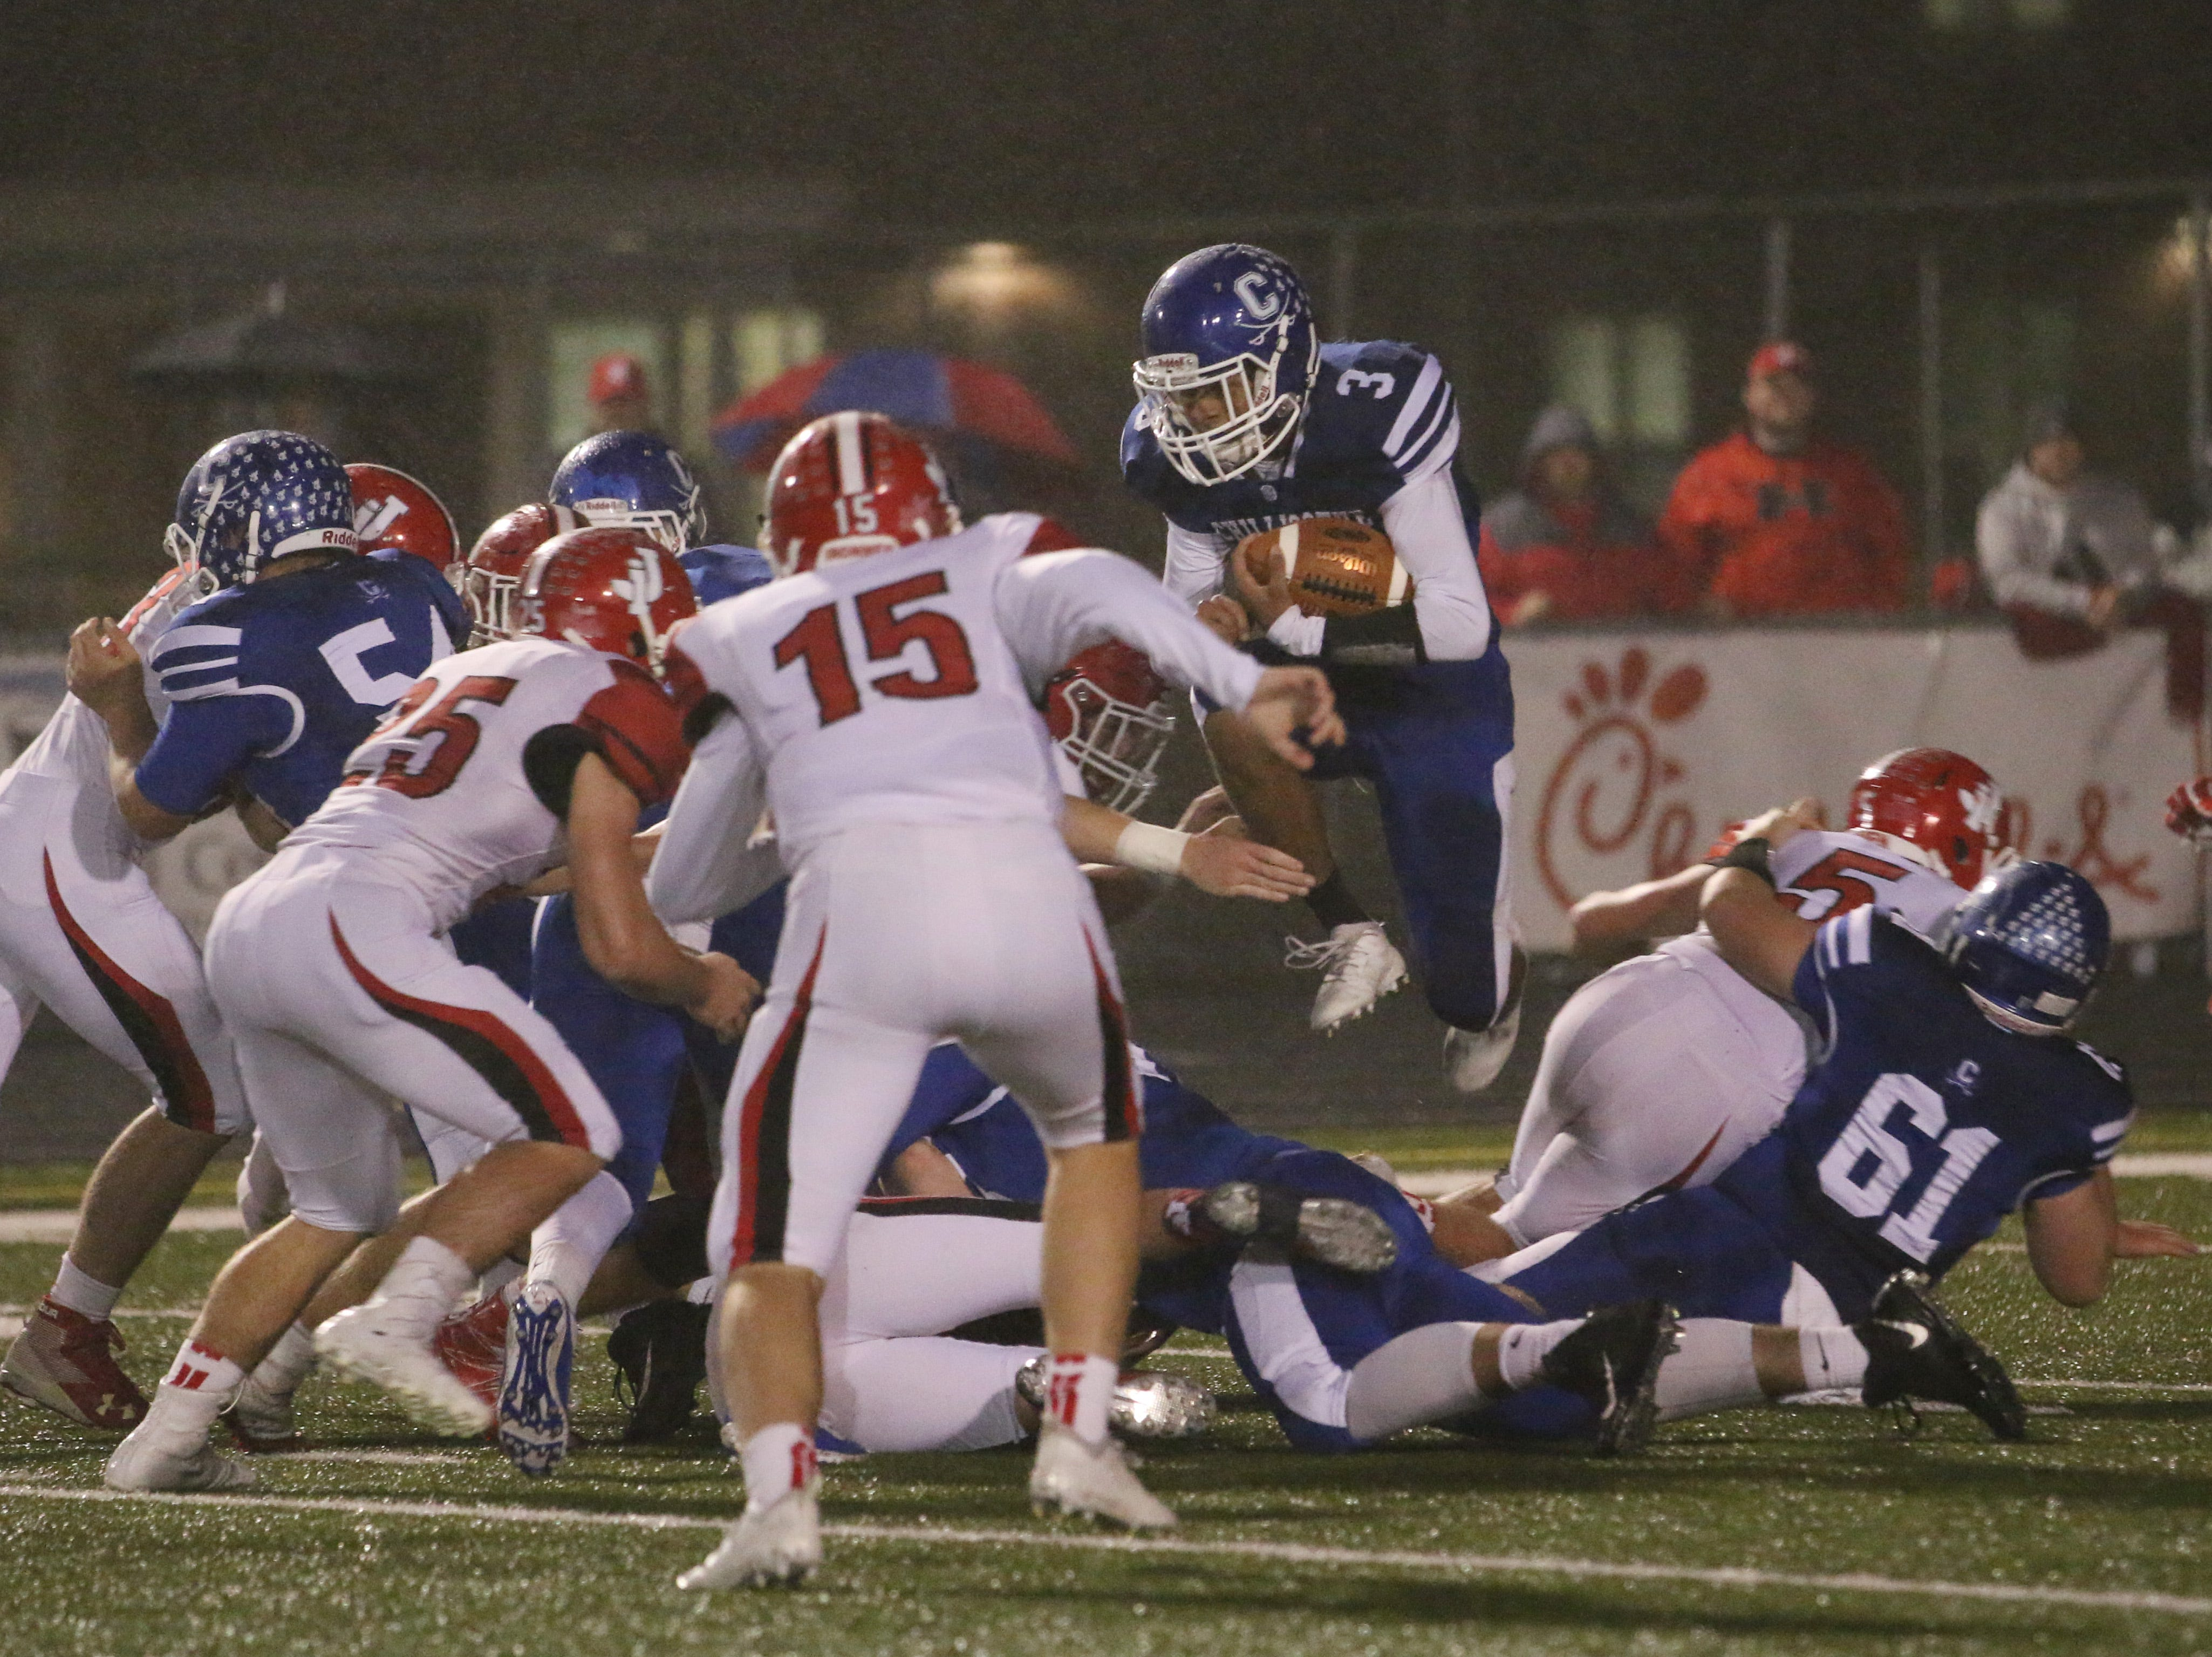 Chillicothe fell to Jackson Friday night at Chillicothe's Herrnstein's Field 20-7.